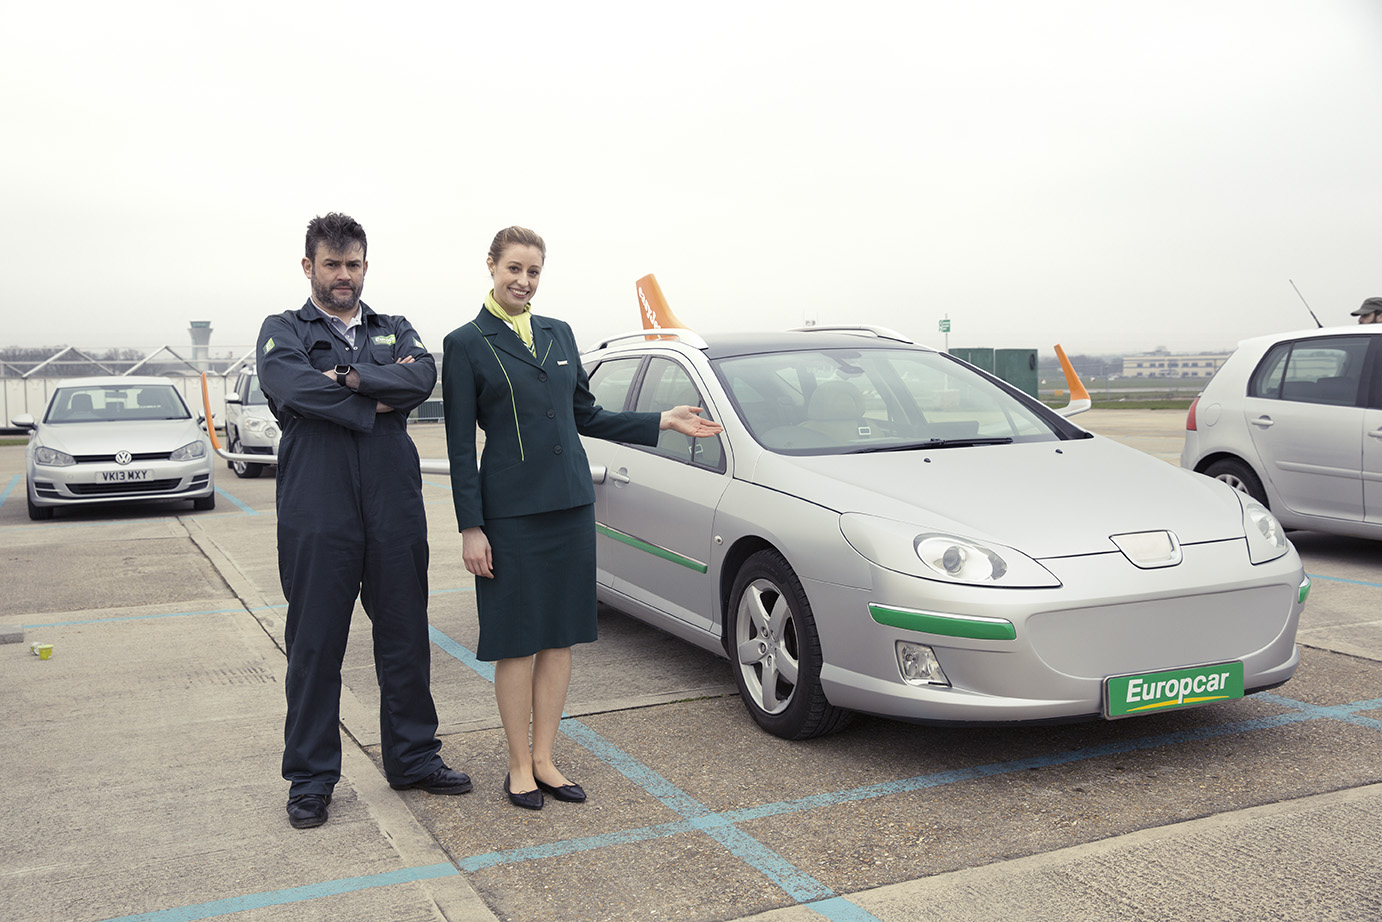 Meet easyJet and Europcar's new, err, 'fly-ire car' fleet